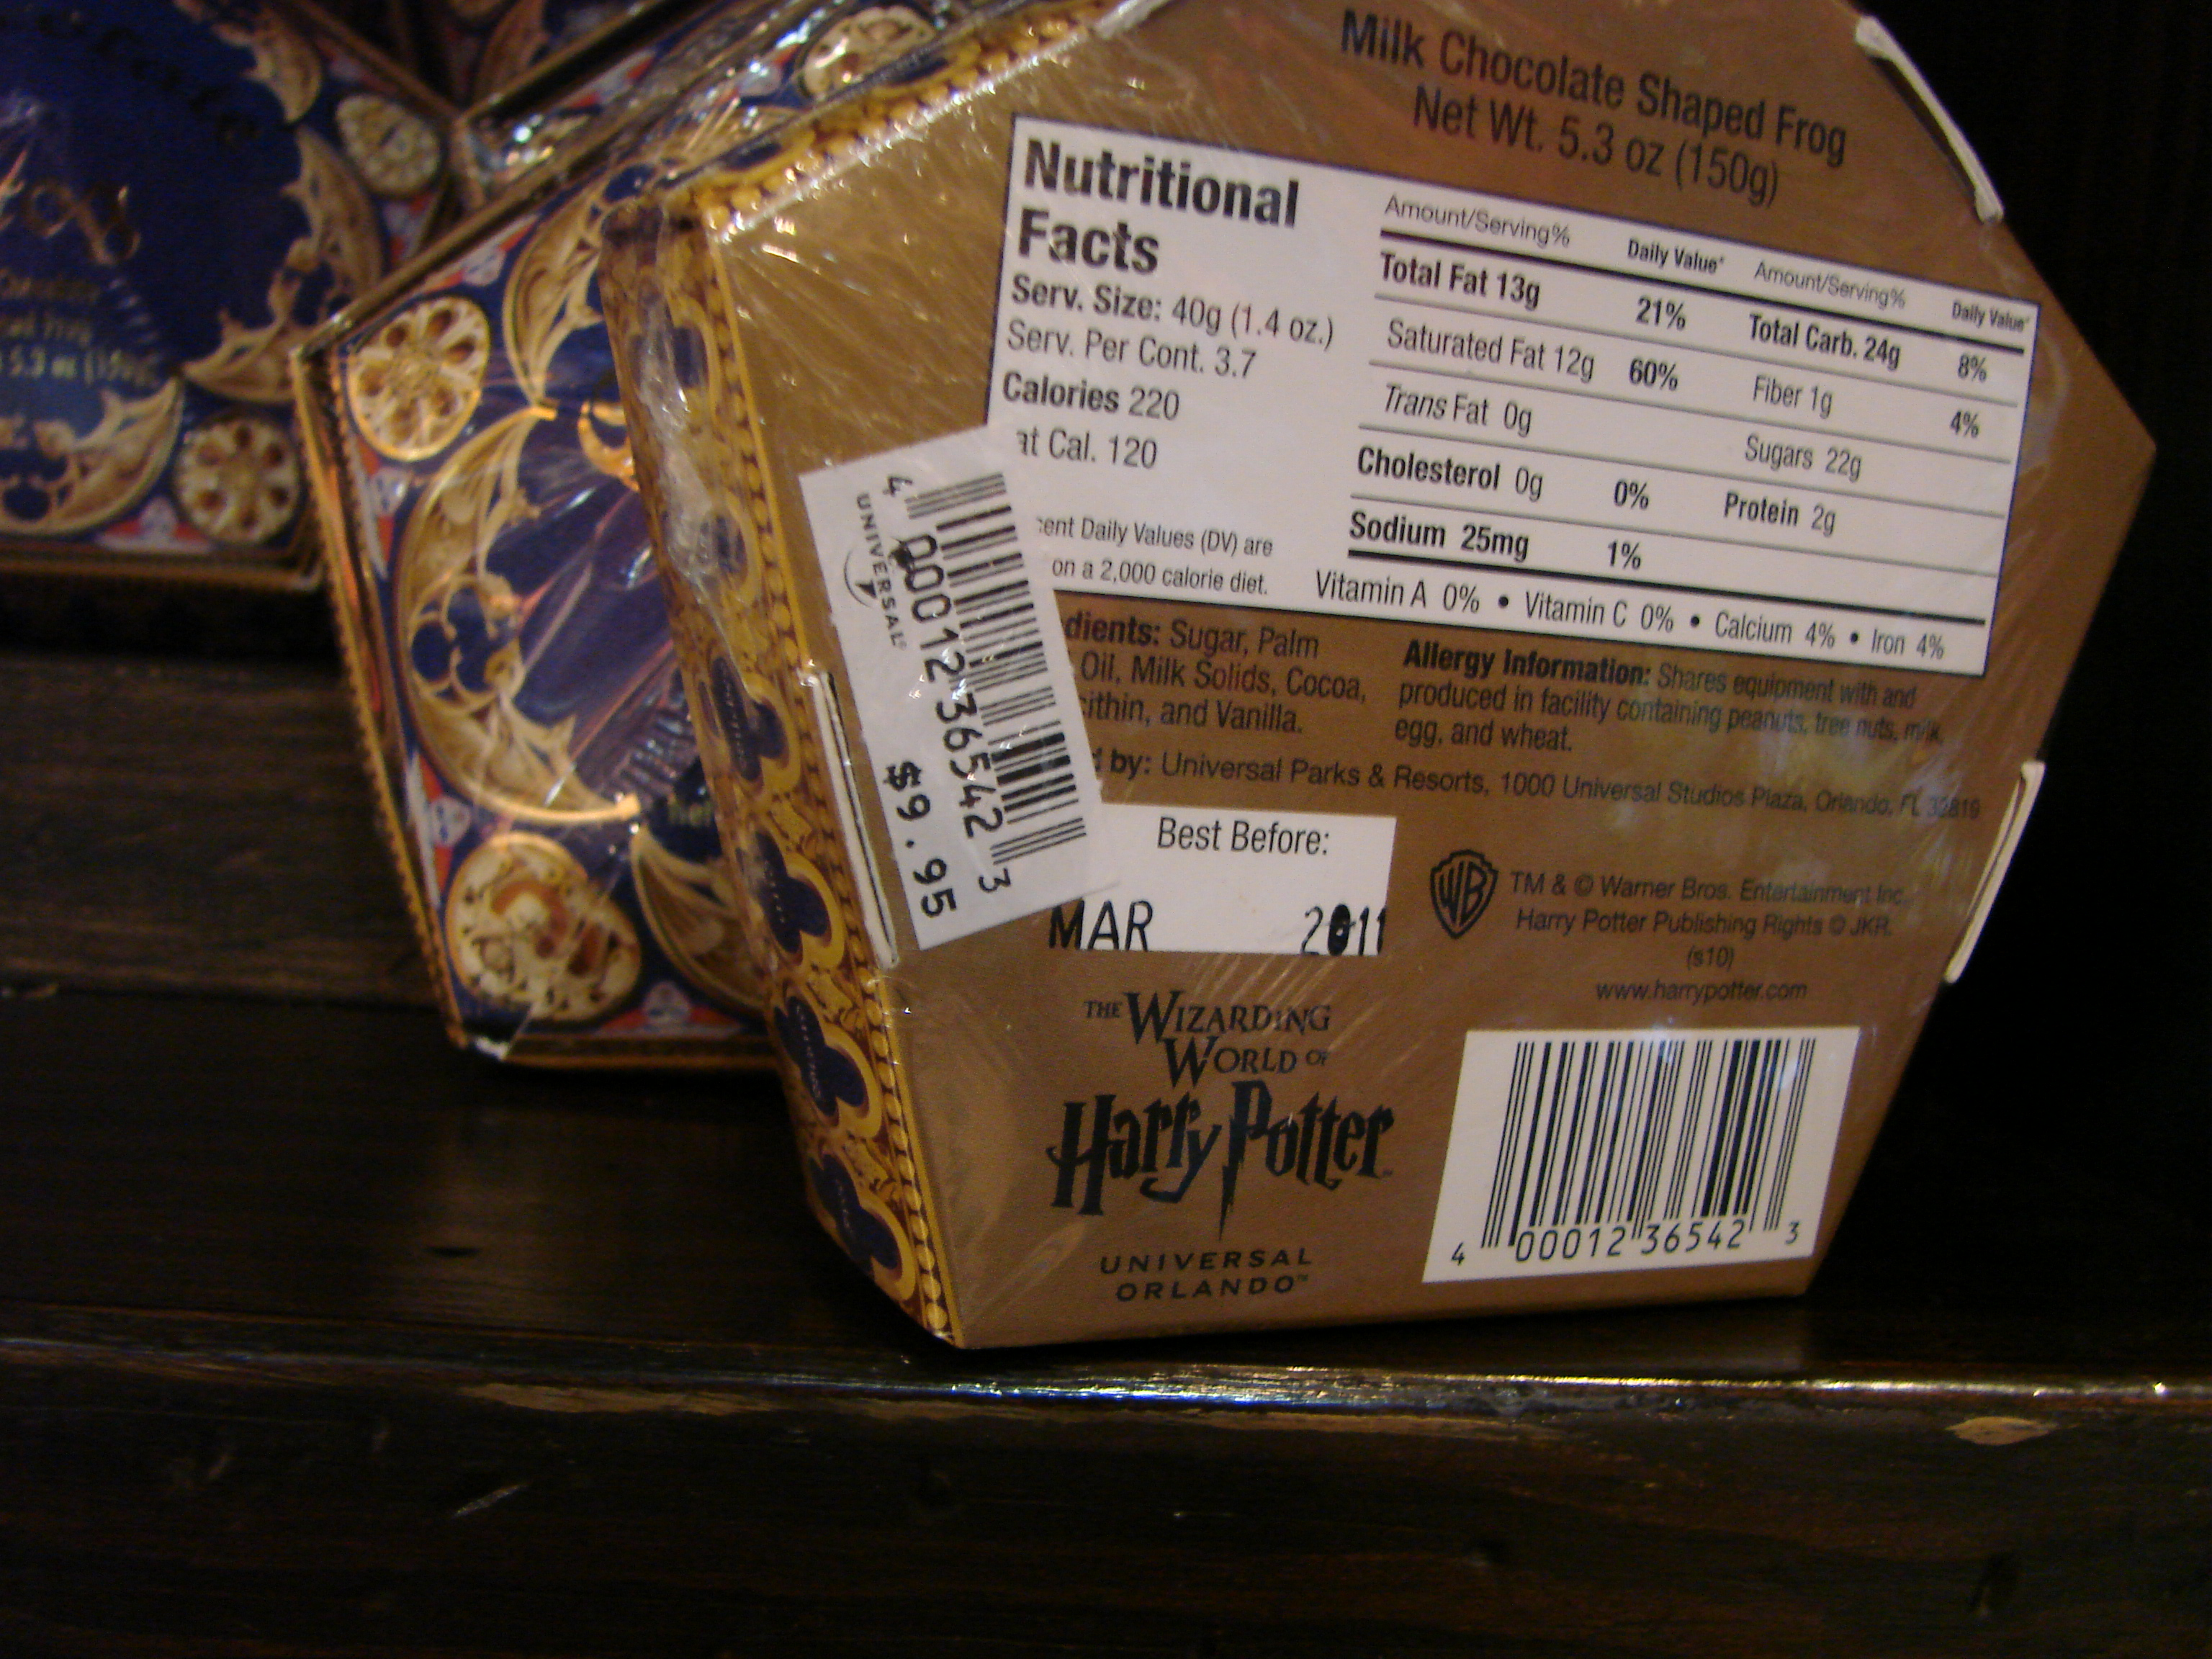 Chocolate Frog - Harry Potter Theme Park at Universal Orlando